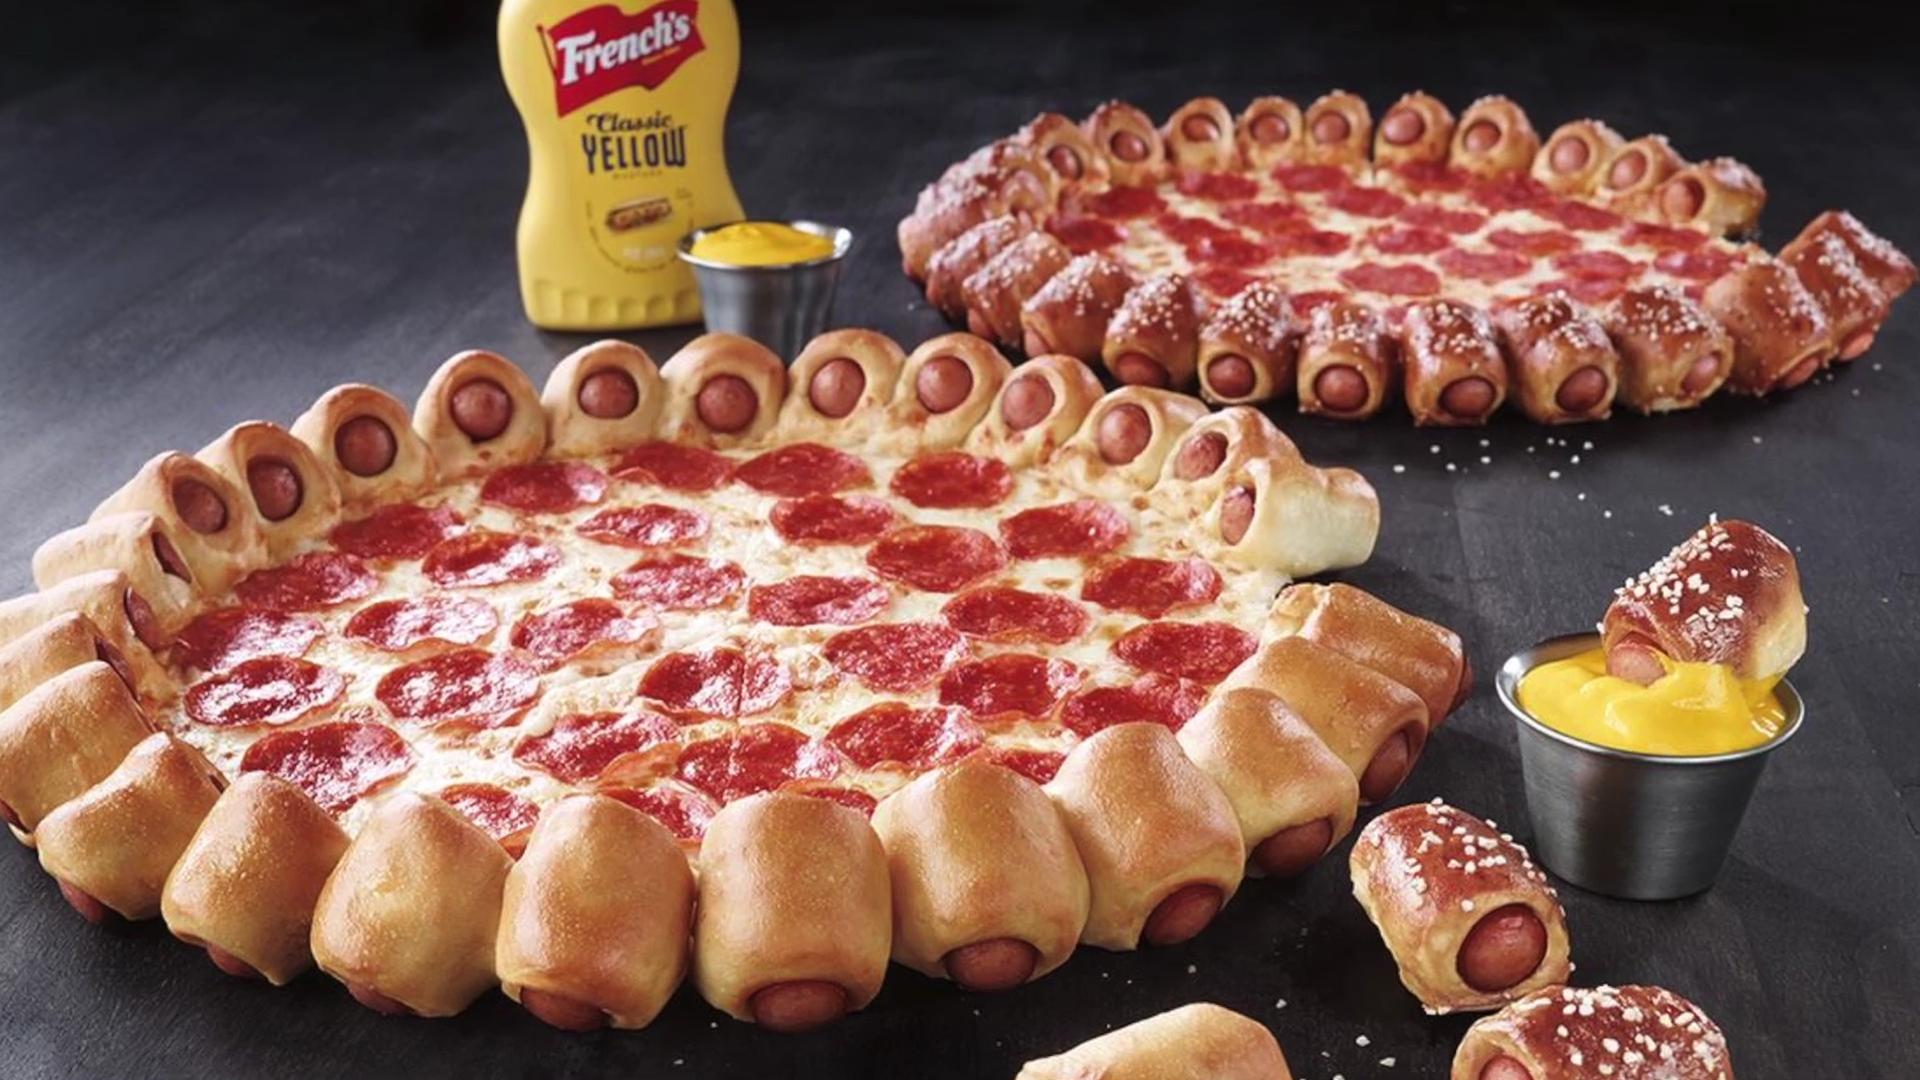 Hot out the oven! Pizza Hut's hot dog pizza is officially happening